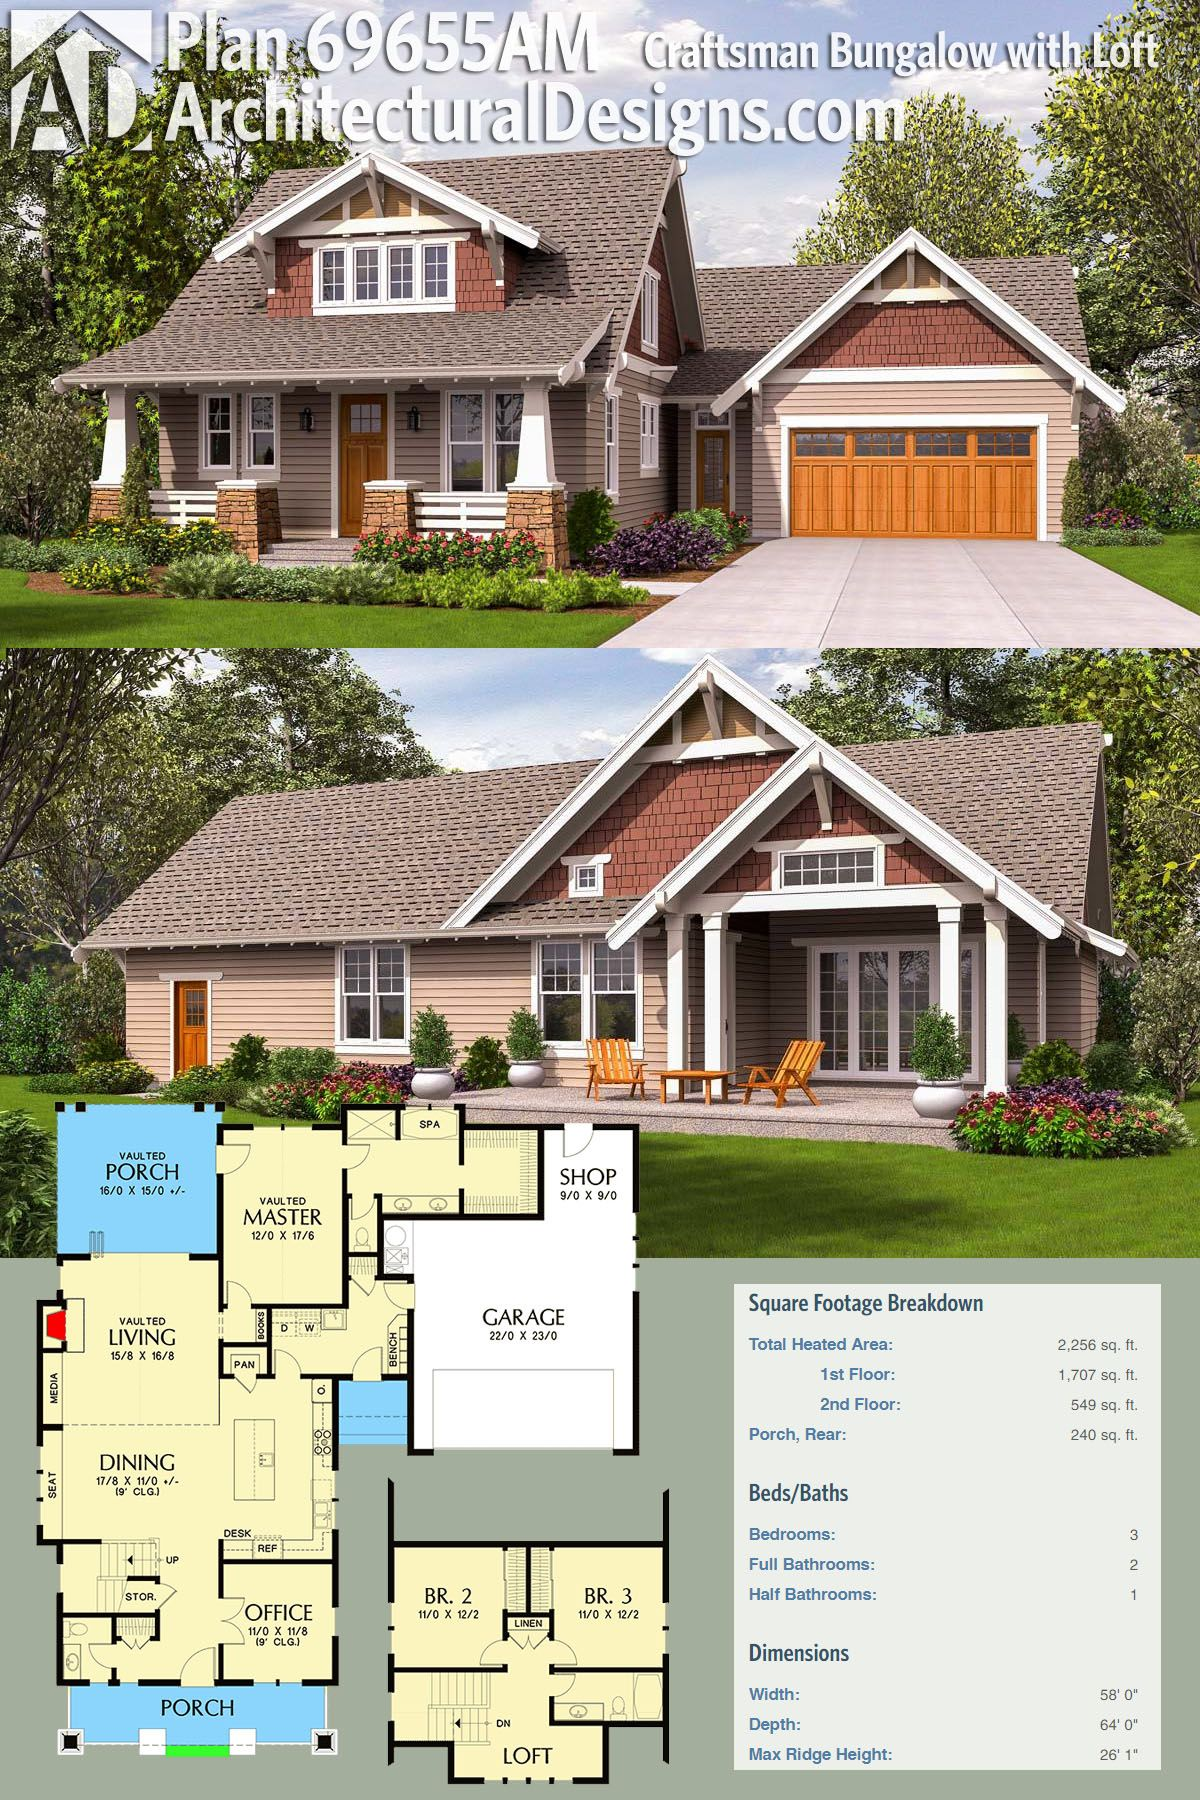 Architectural Designs Bungalow House Plan 69655AM gives